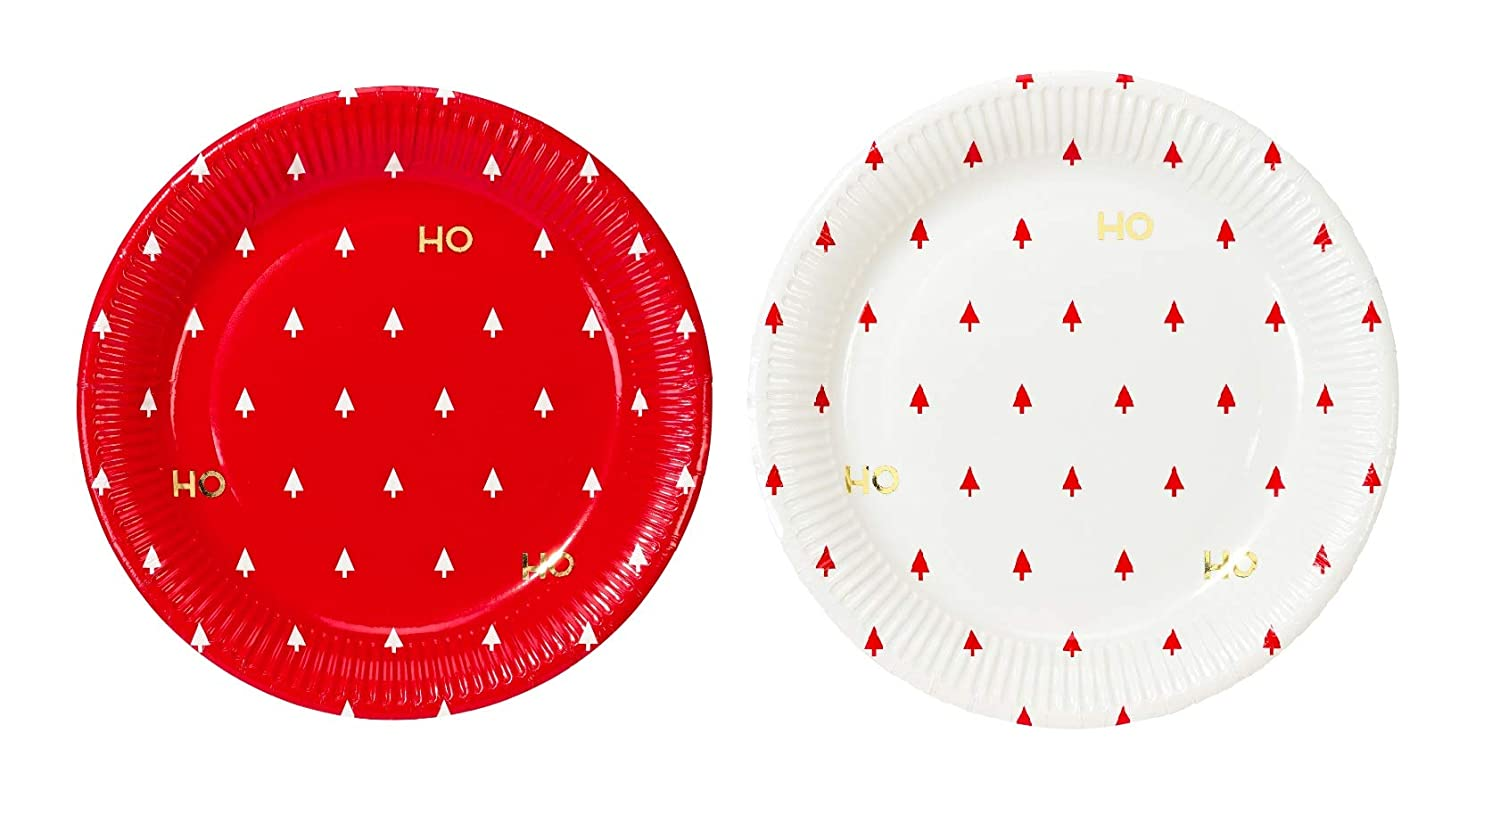 Talking Tables Christmas Table Decorations | Christmas Paper Plates | Ho Ho Ho White, Red And Gold Christmas Plates | 12 Count HO-PLATEV2